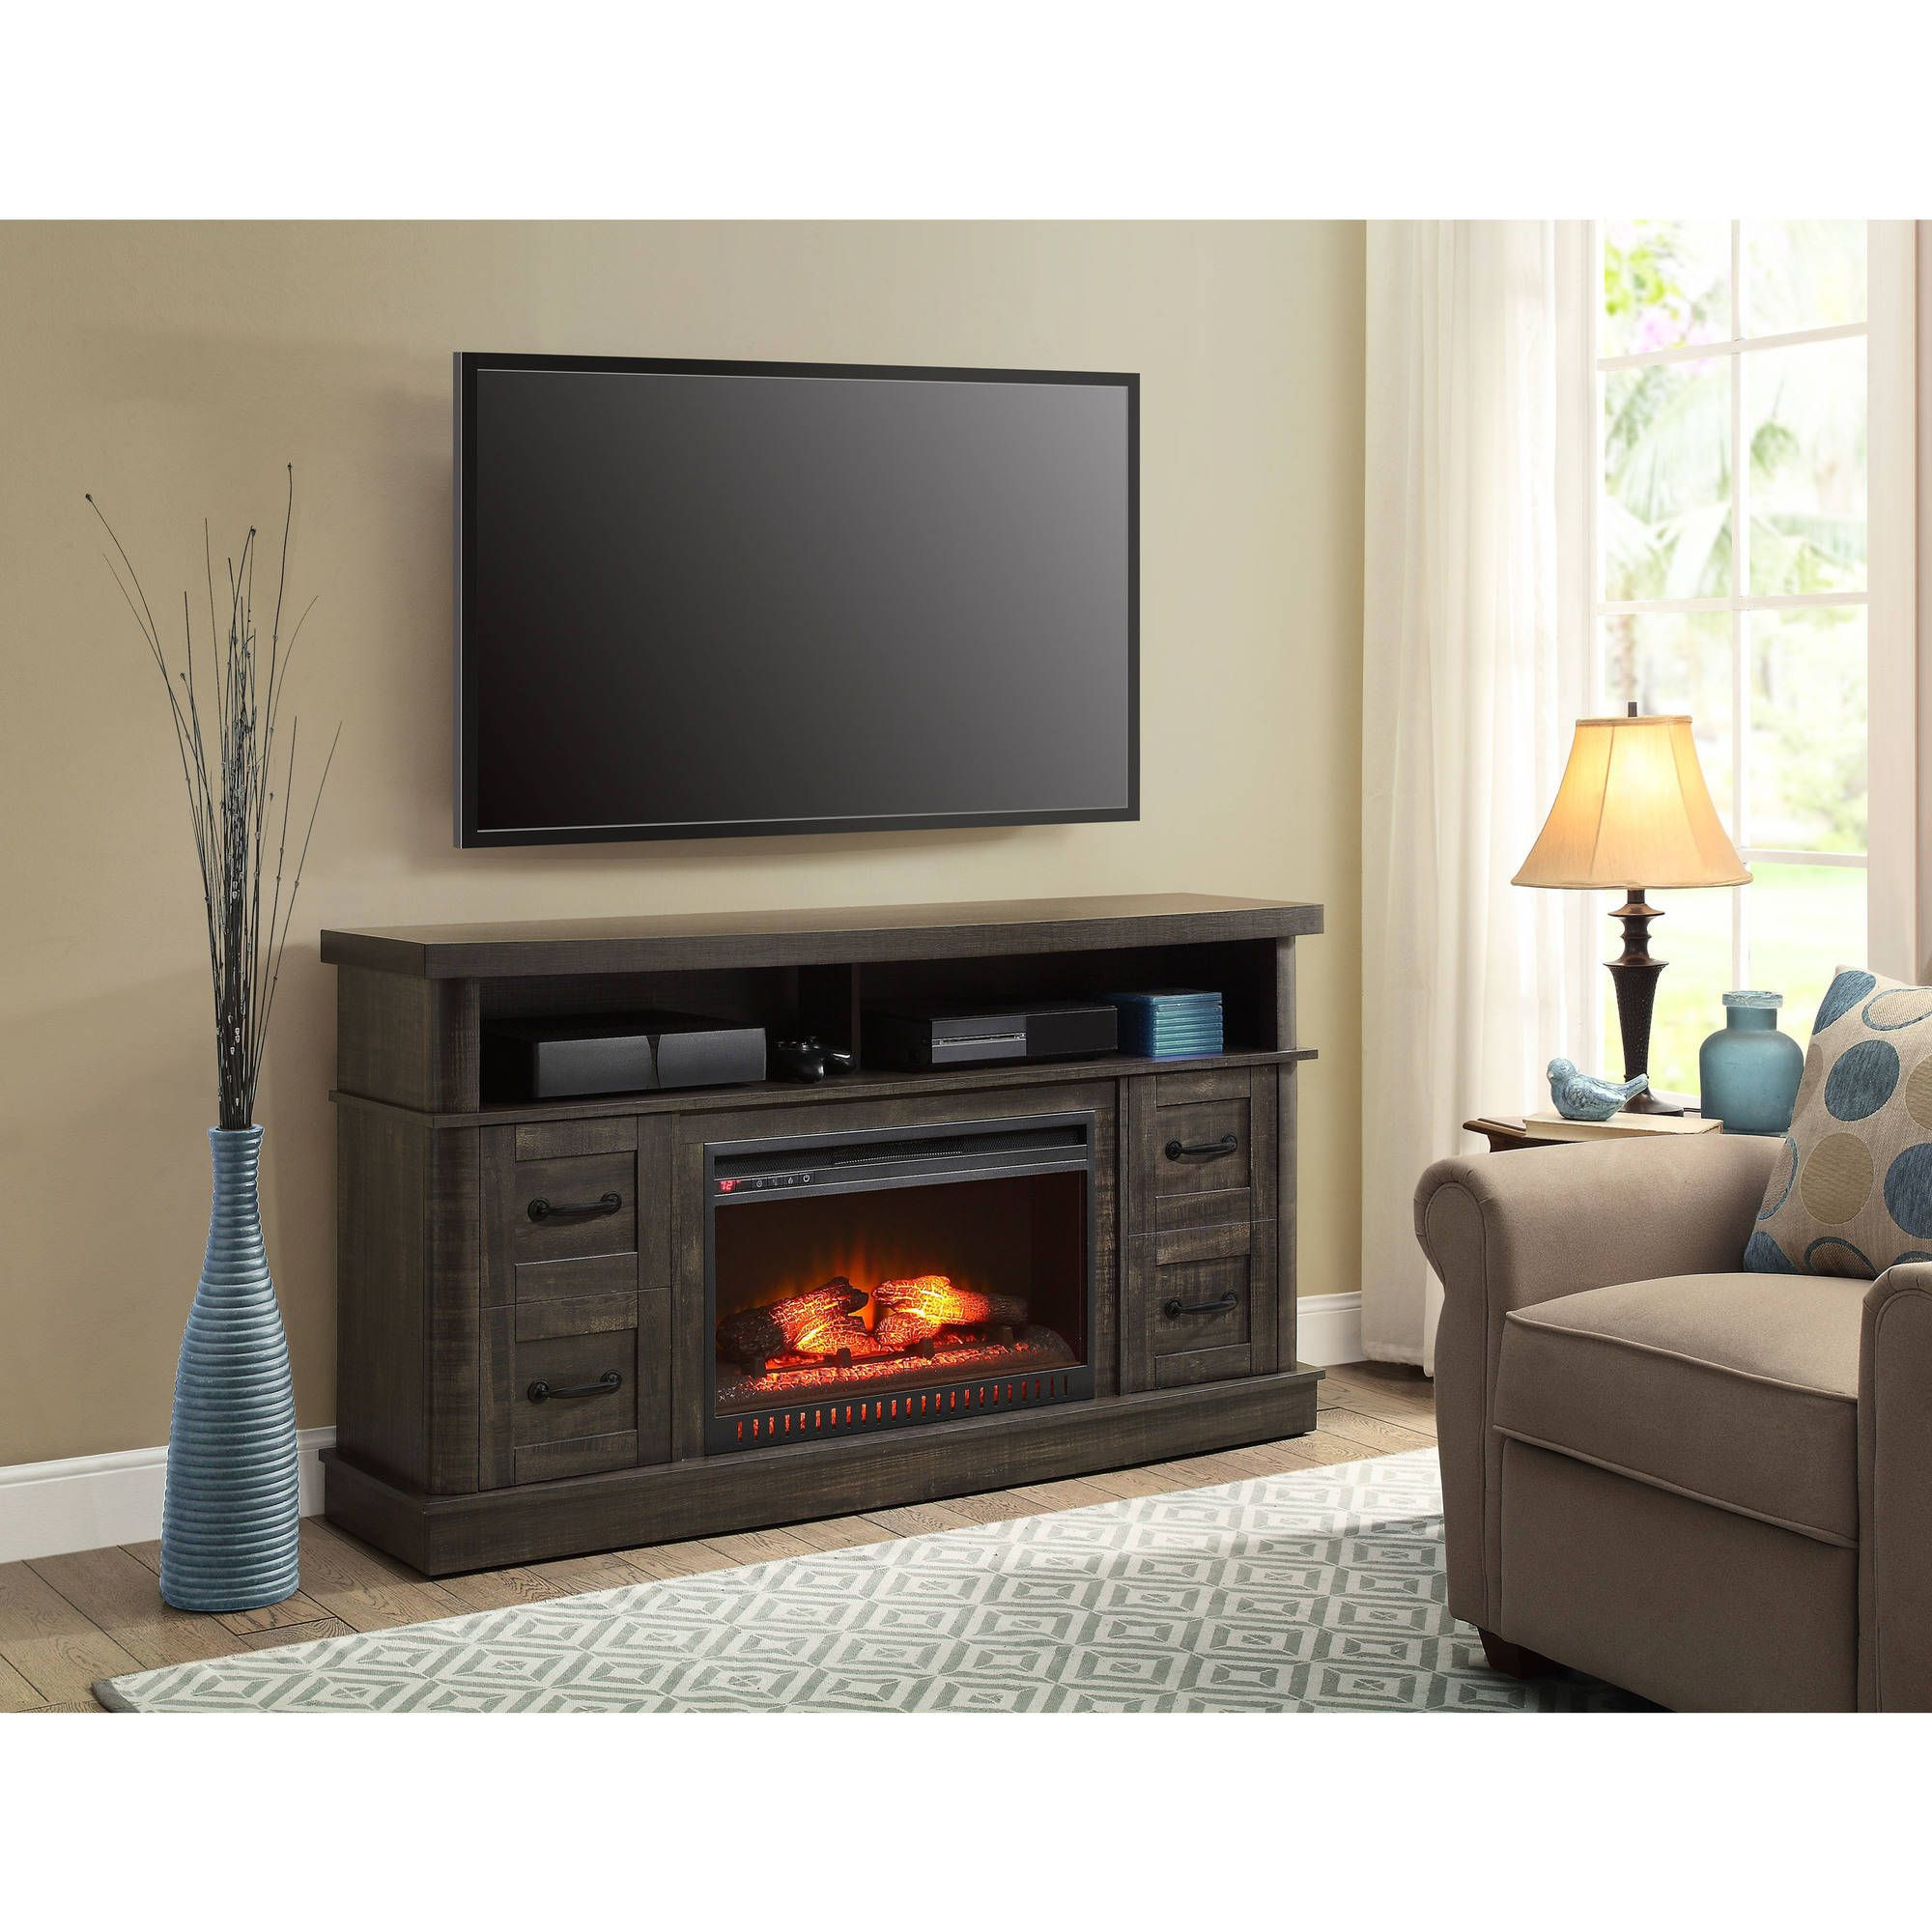 Media fireplace and Consoles